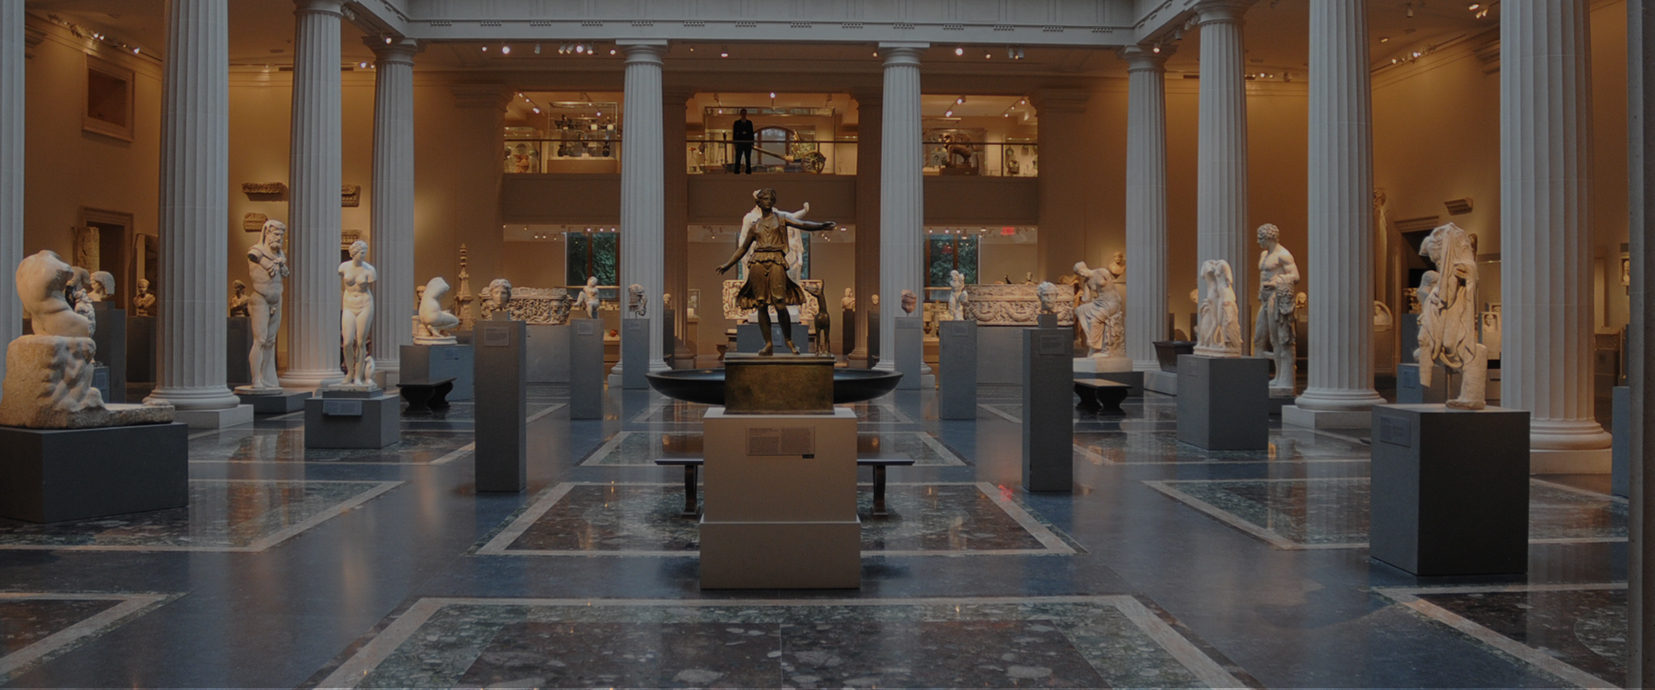 Tour the Metropolitan Museum of Art